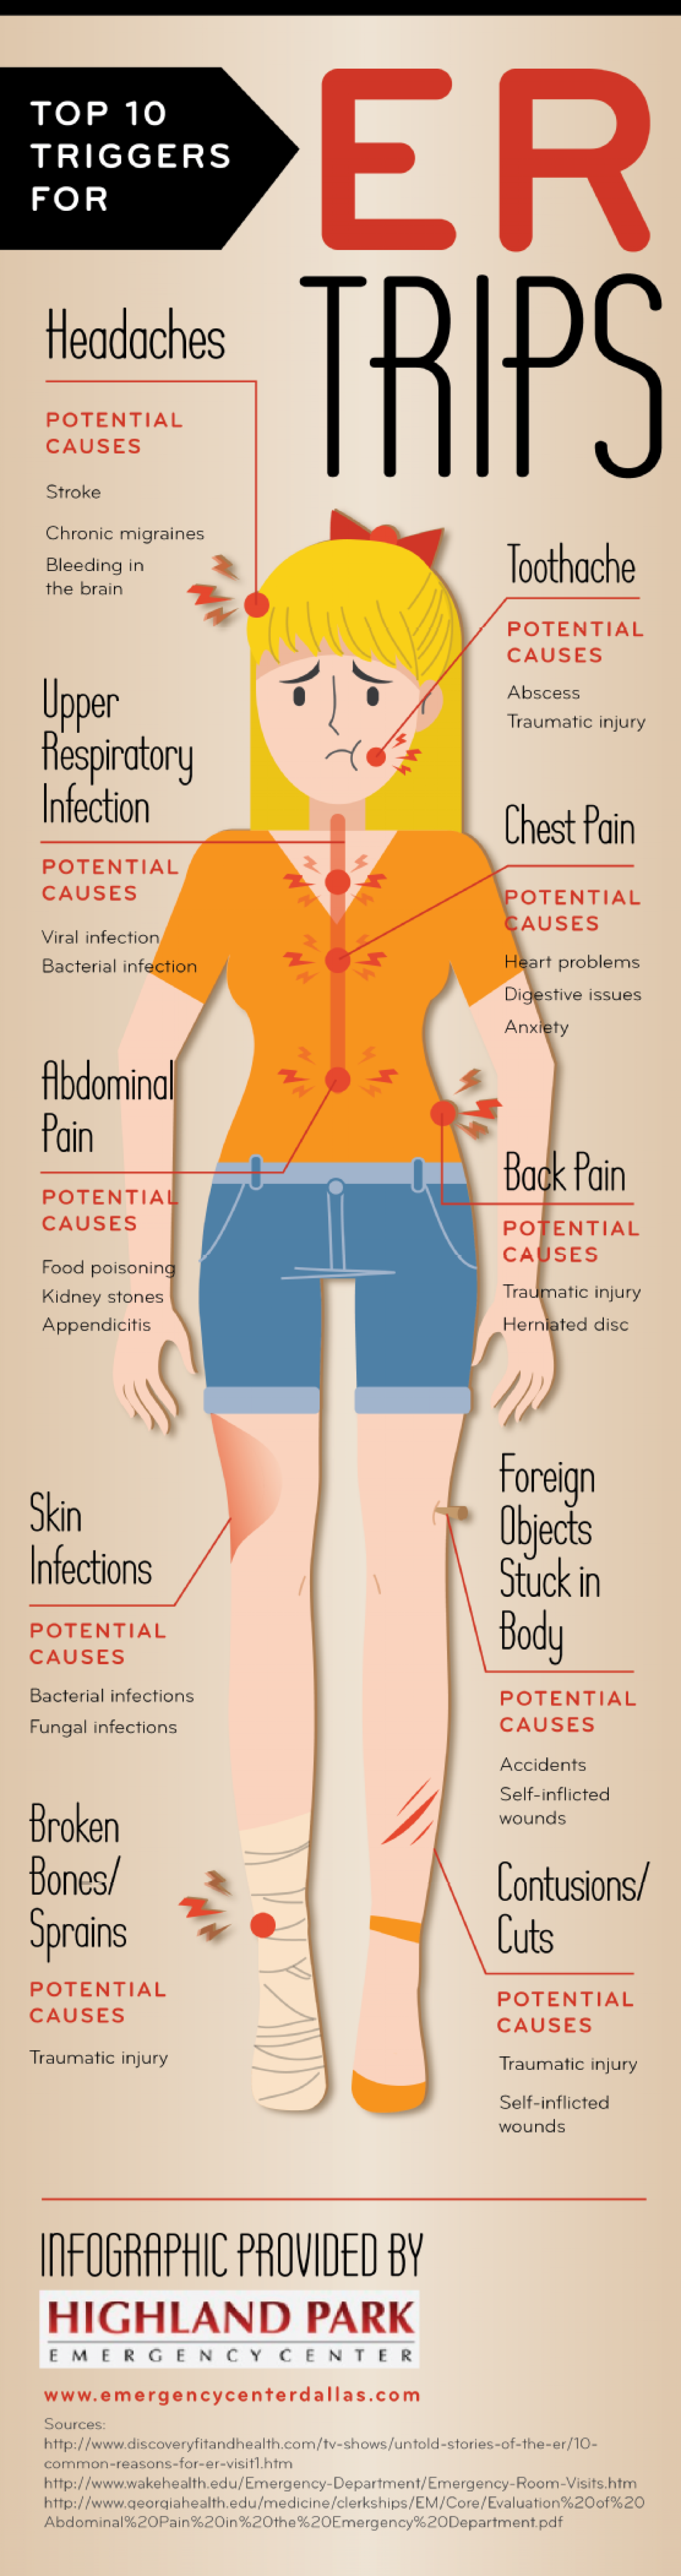 Top 10 Triggers for ER Trips  Infographic